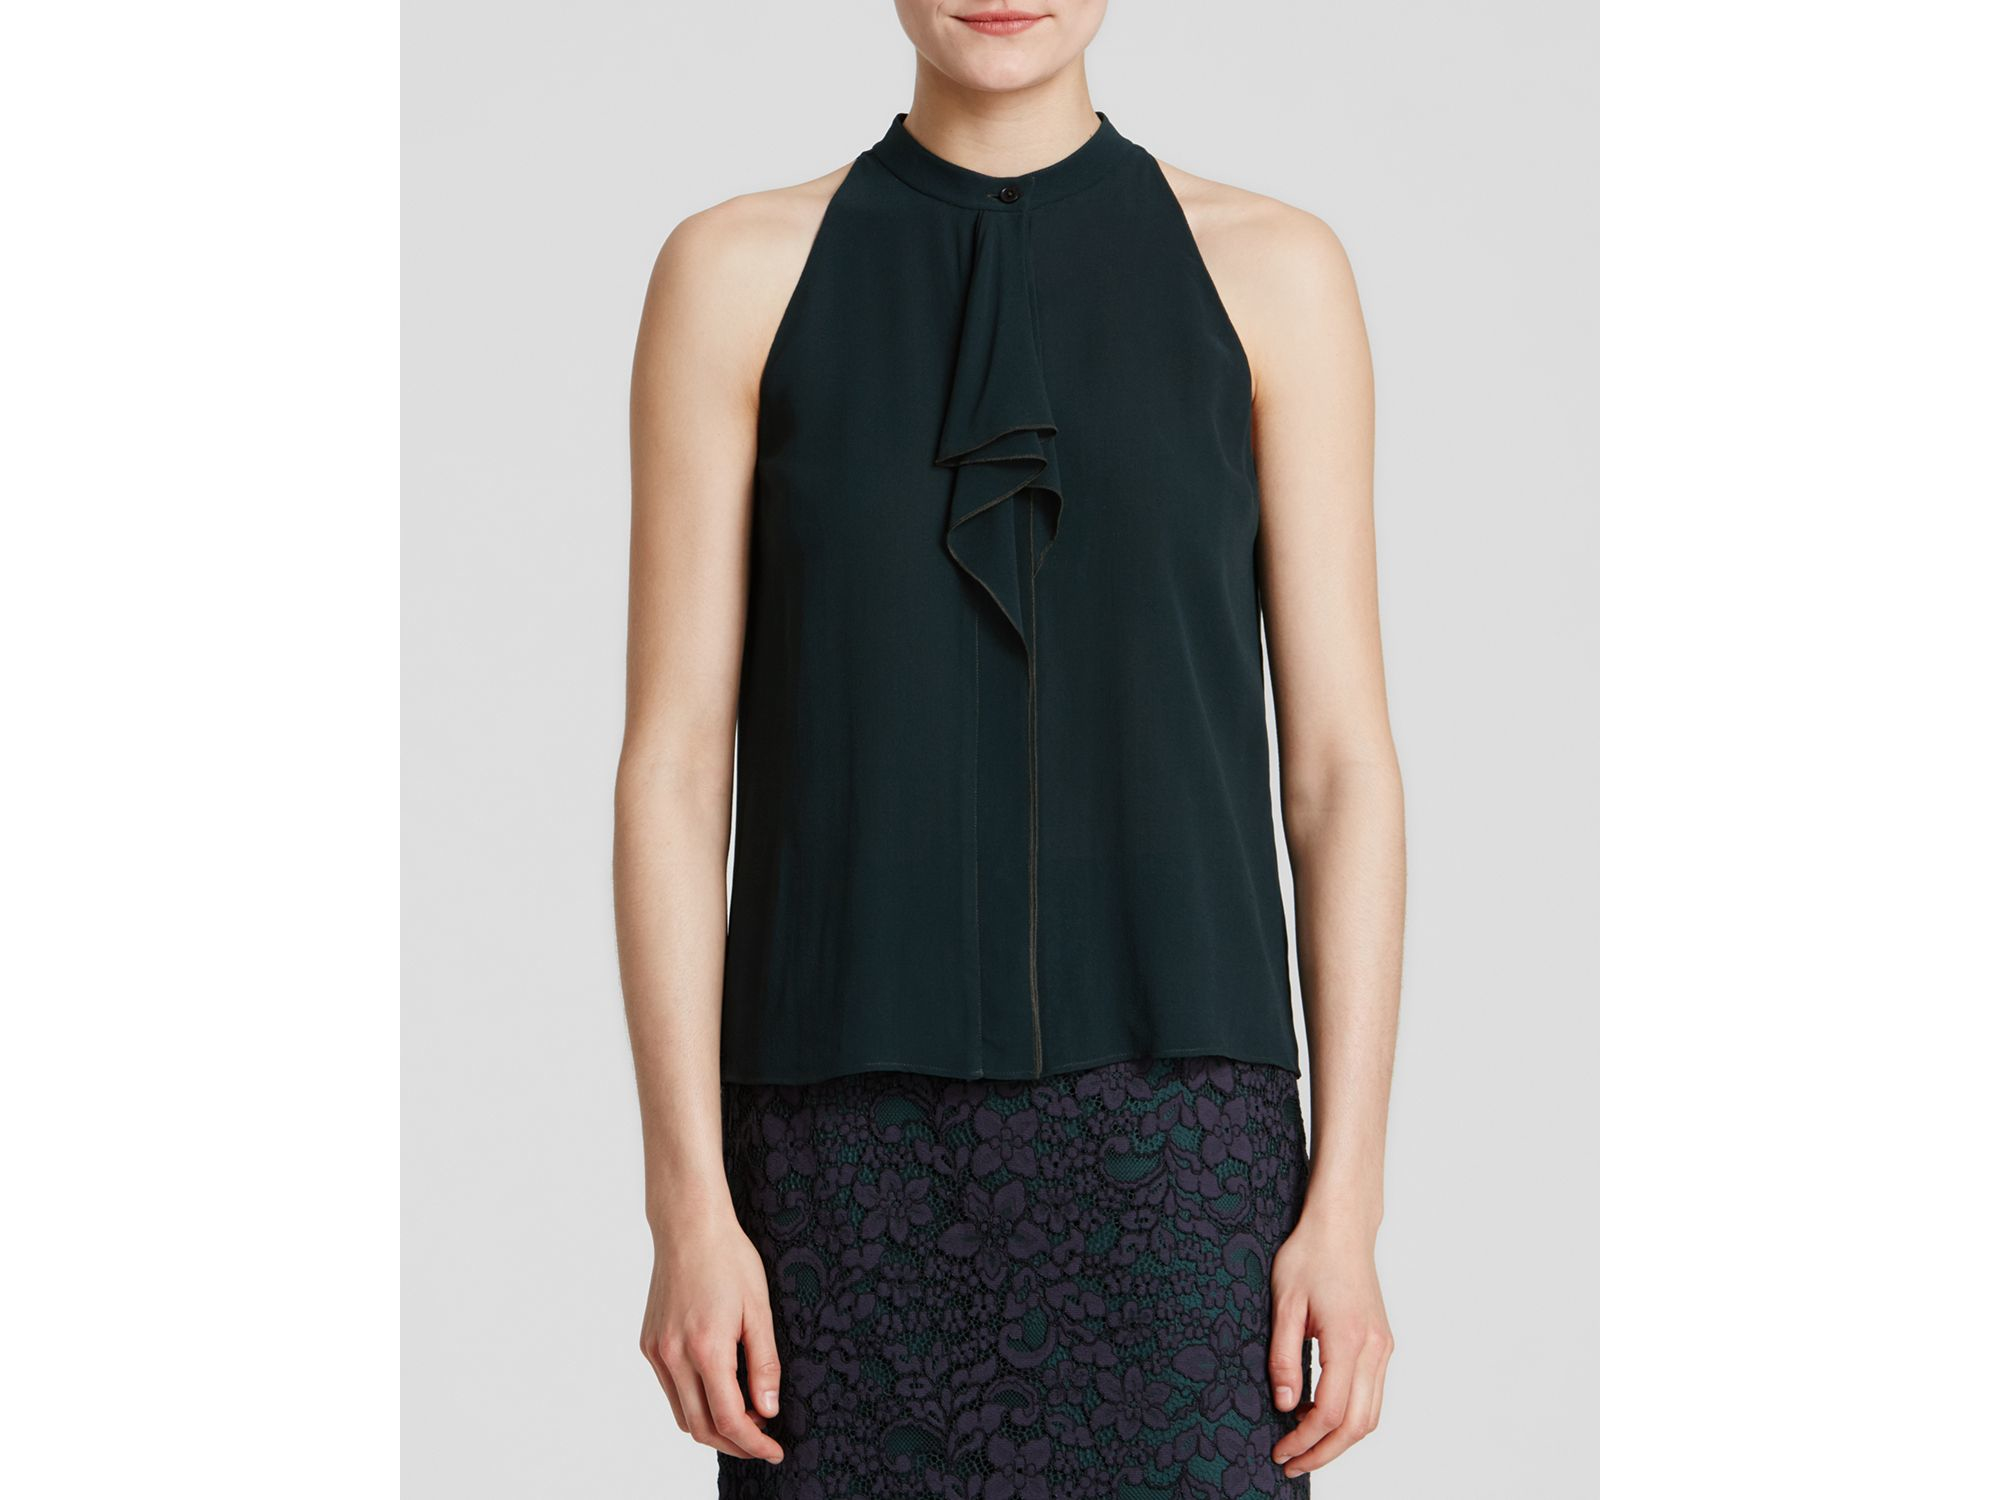 Factory Price Explore Online Tory Burch Silk Sleeveless Top ELKUEB